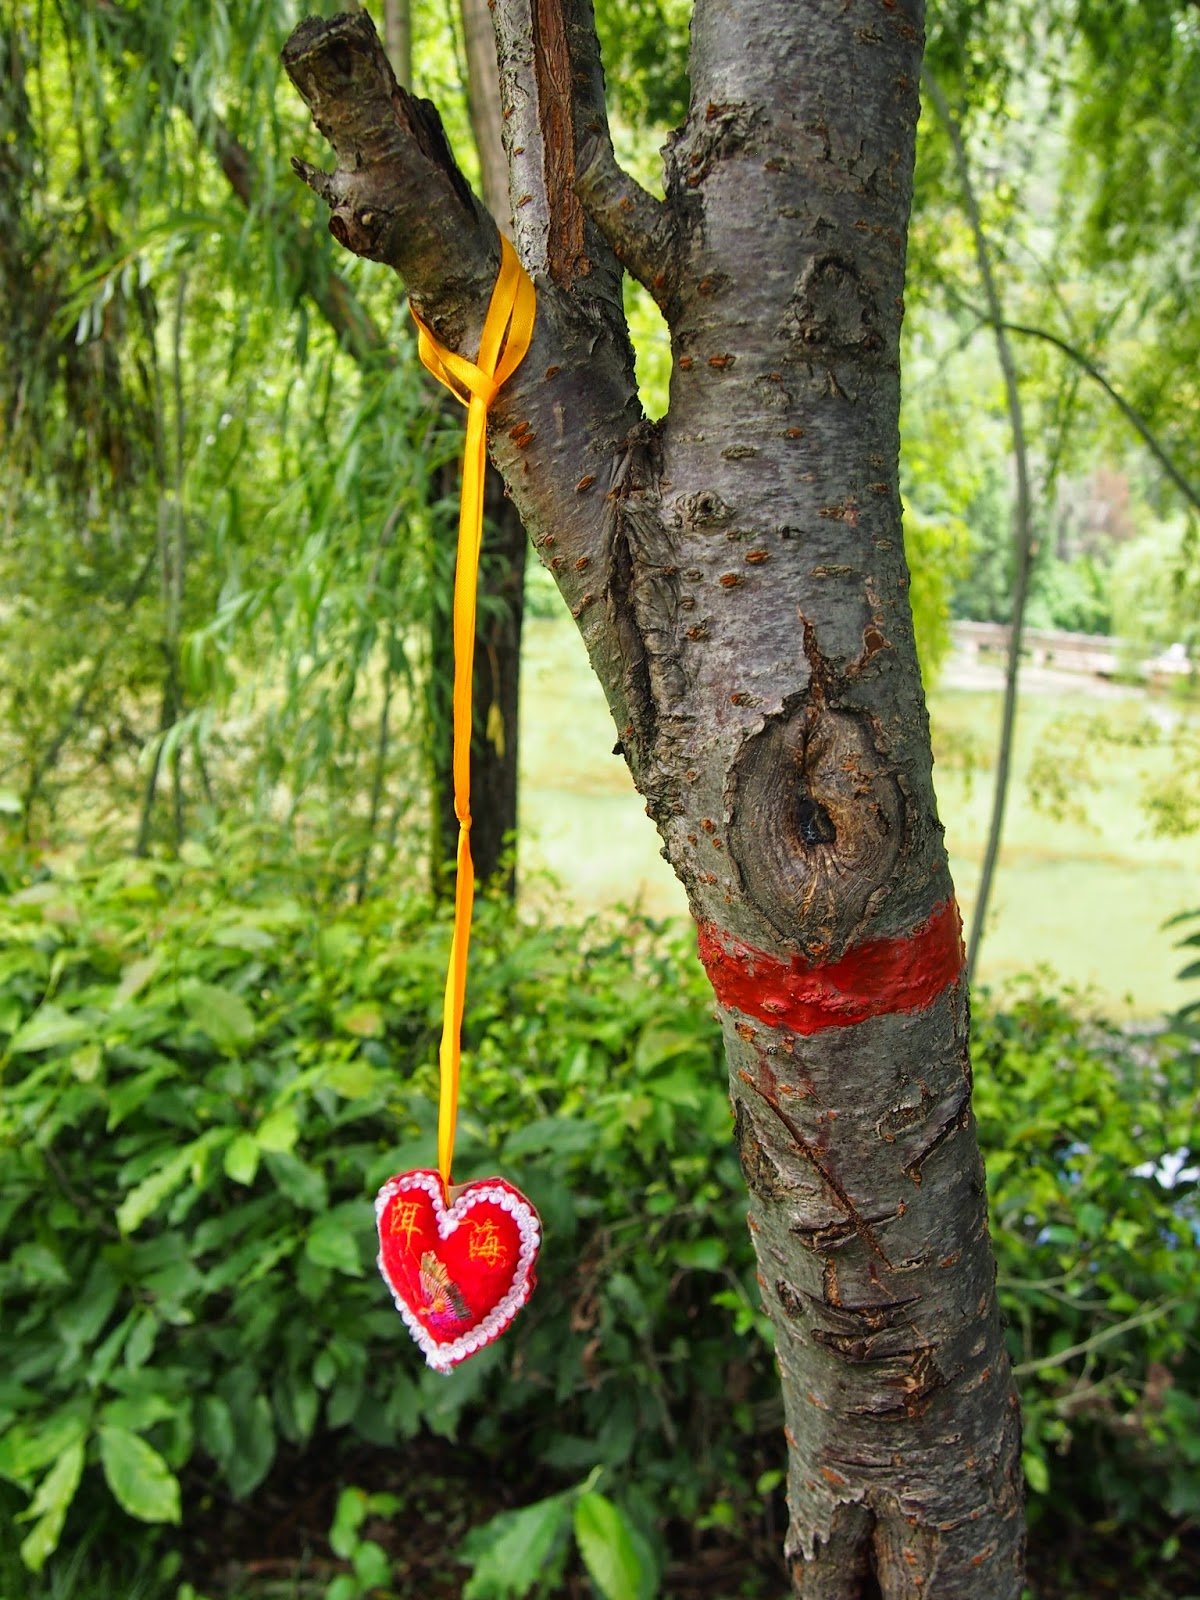 A heart ornament on a tree